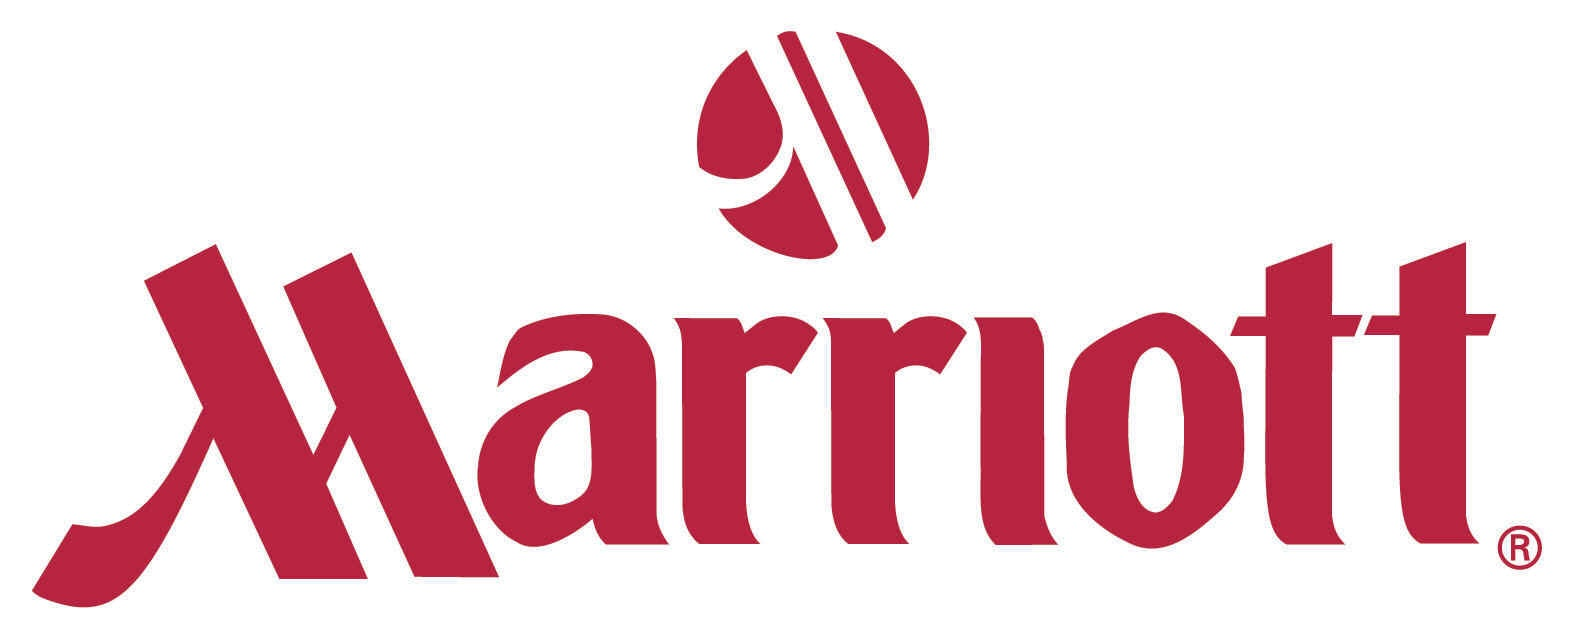 marriott-logo-The hospitality industry is not answering quickly to consumer demand. Free, ubiquitous, one-click and unlimited Wi-Fi in hotel is still a dream.